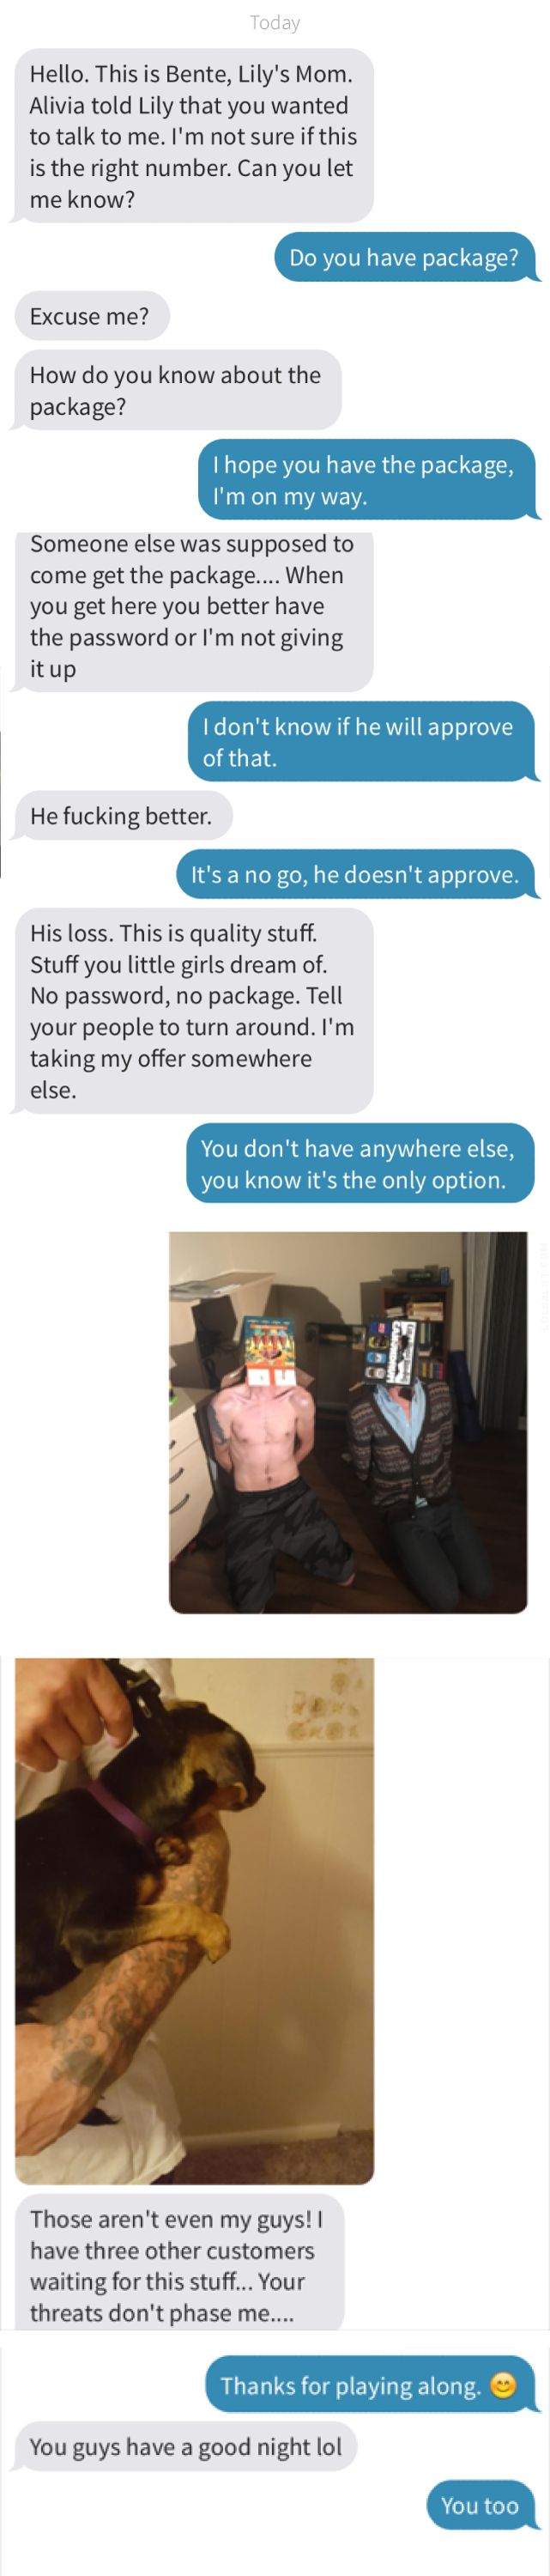 Wrong number text message... escalated quickly http://lolsalot.com/funny-pics/wrong-number-text-message-escalated-quickly/ #Funny #Pic